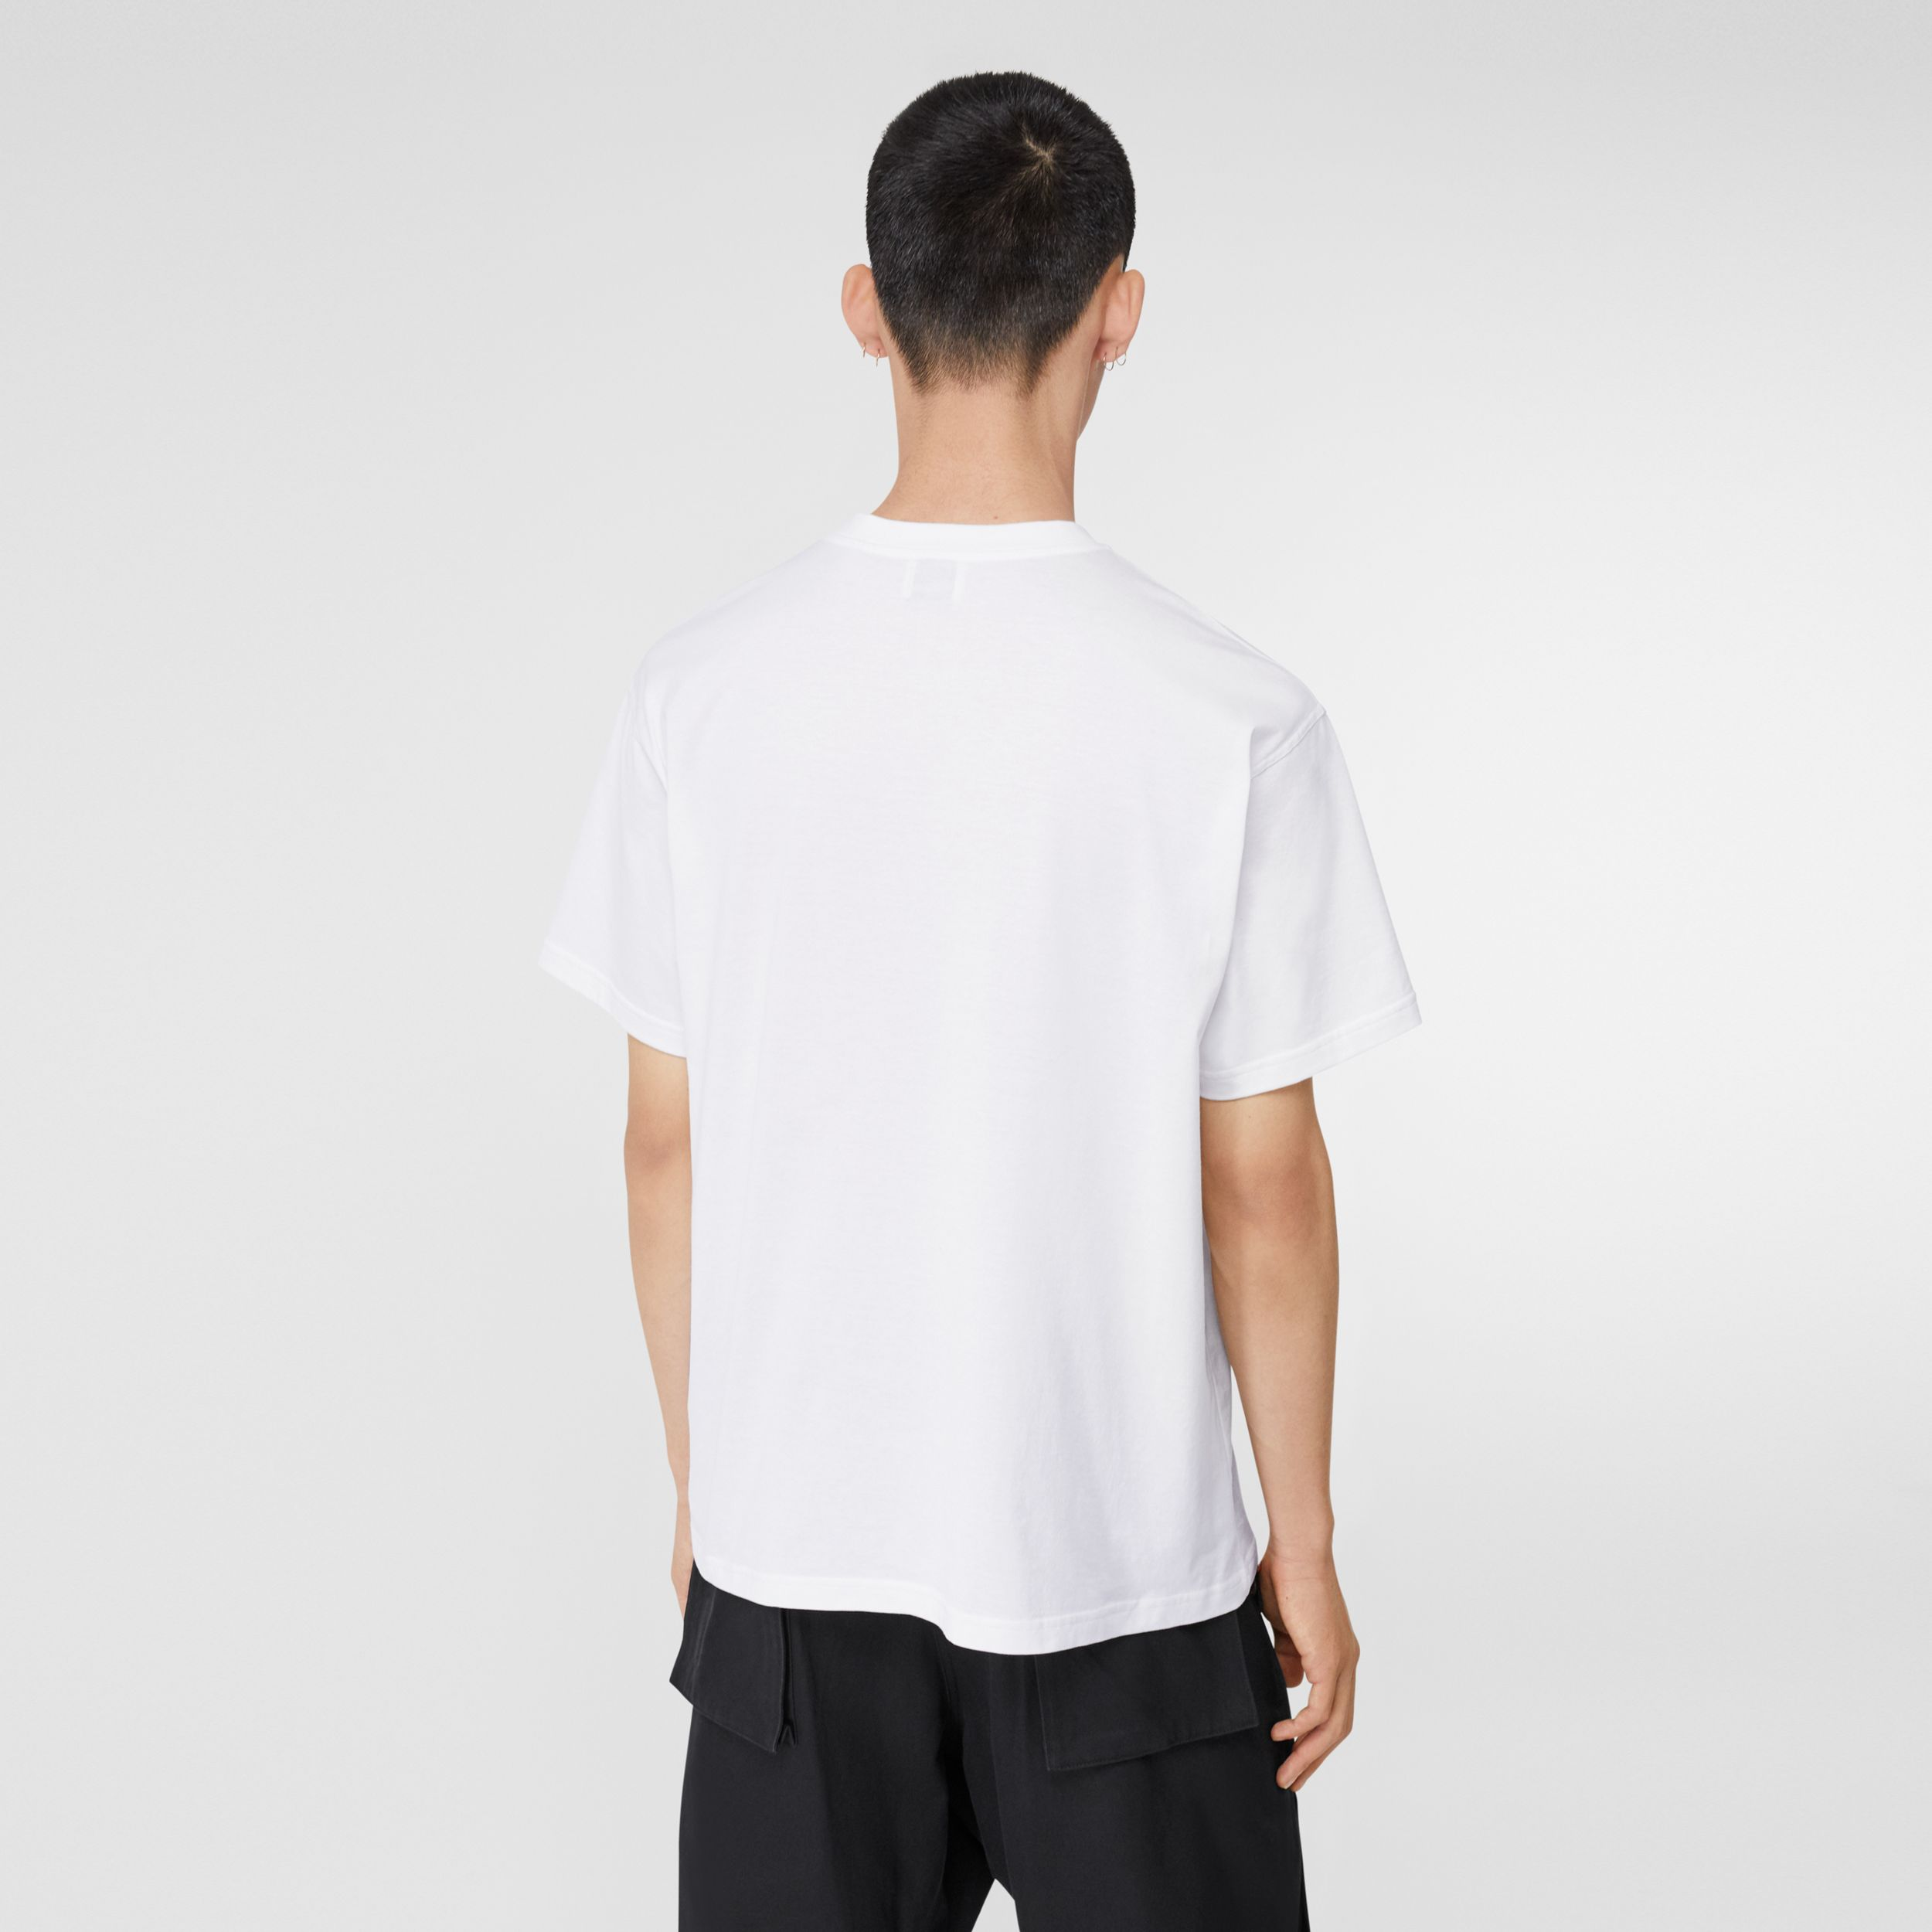 Monogram Motif Cotton Oversized T-shirt in White - Men | Burberry - 3